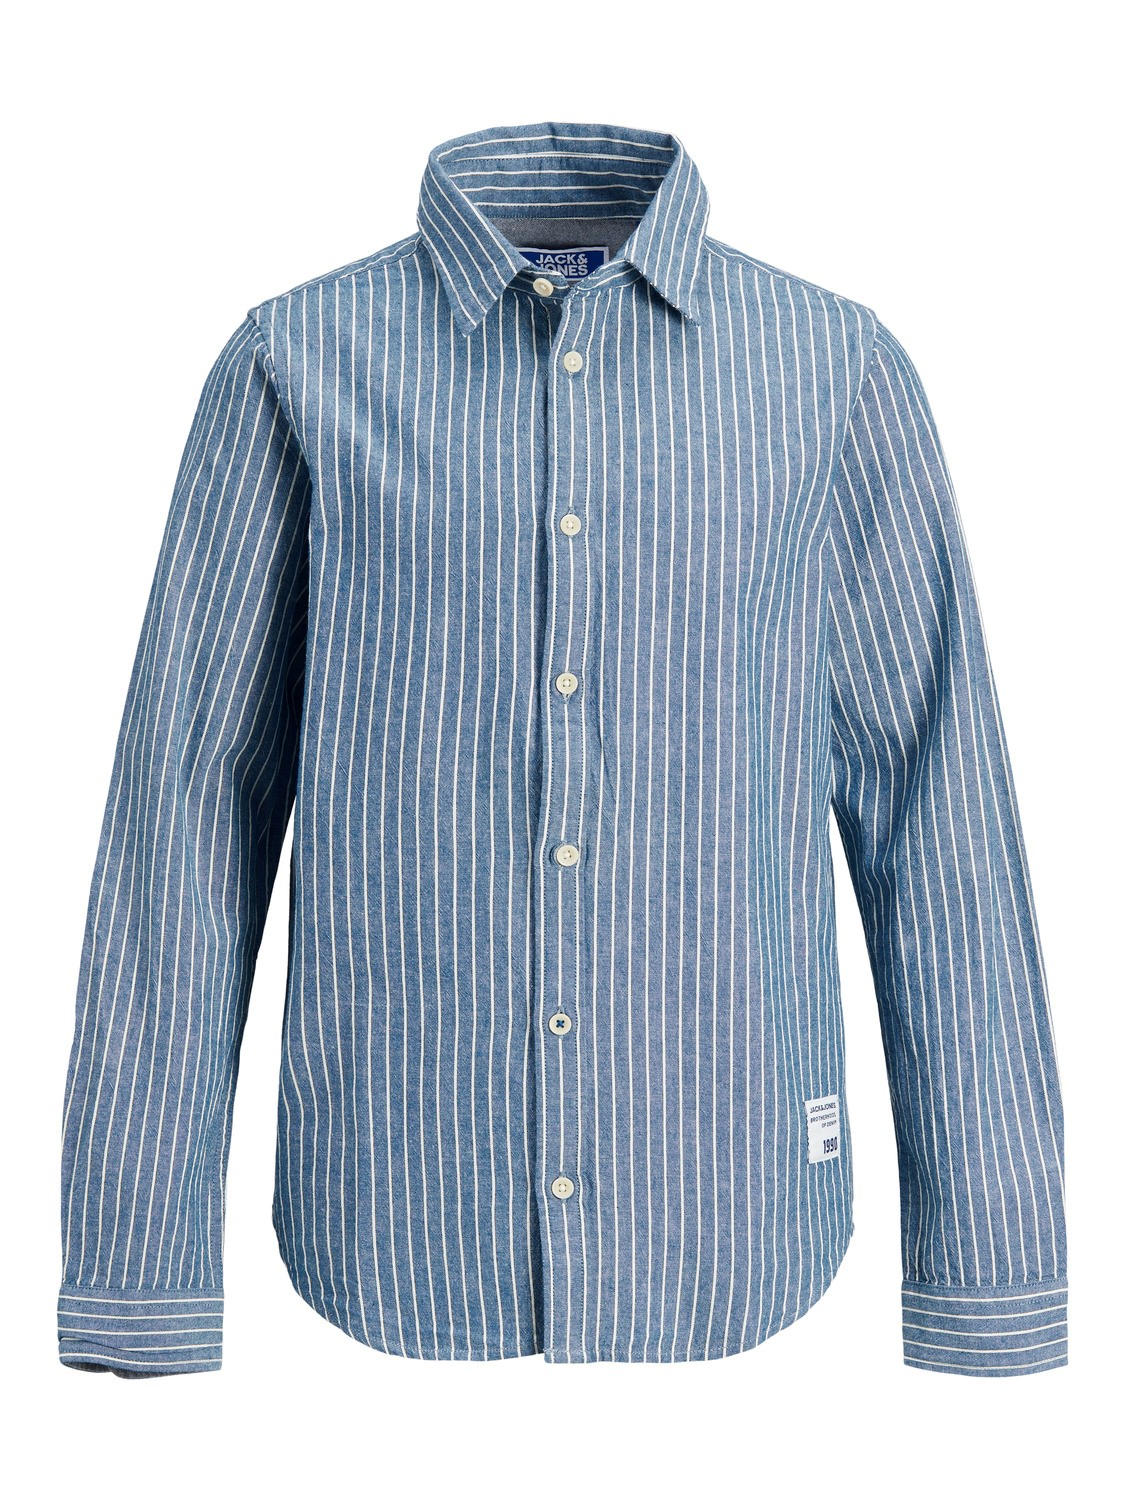 JACK & JONES JJ30CLASSIC SHIRT L/S JR